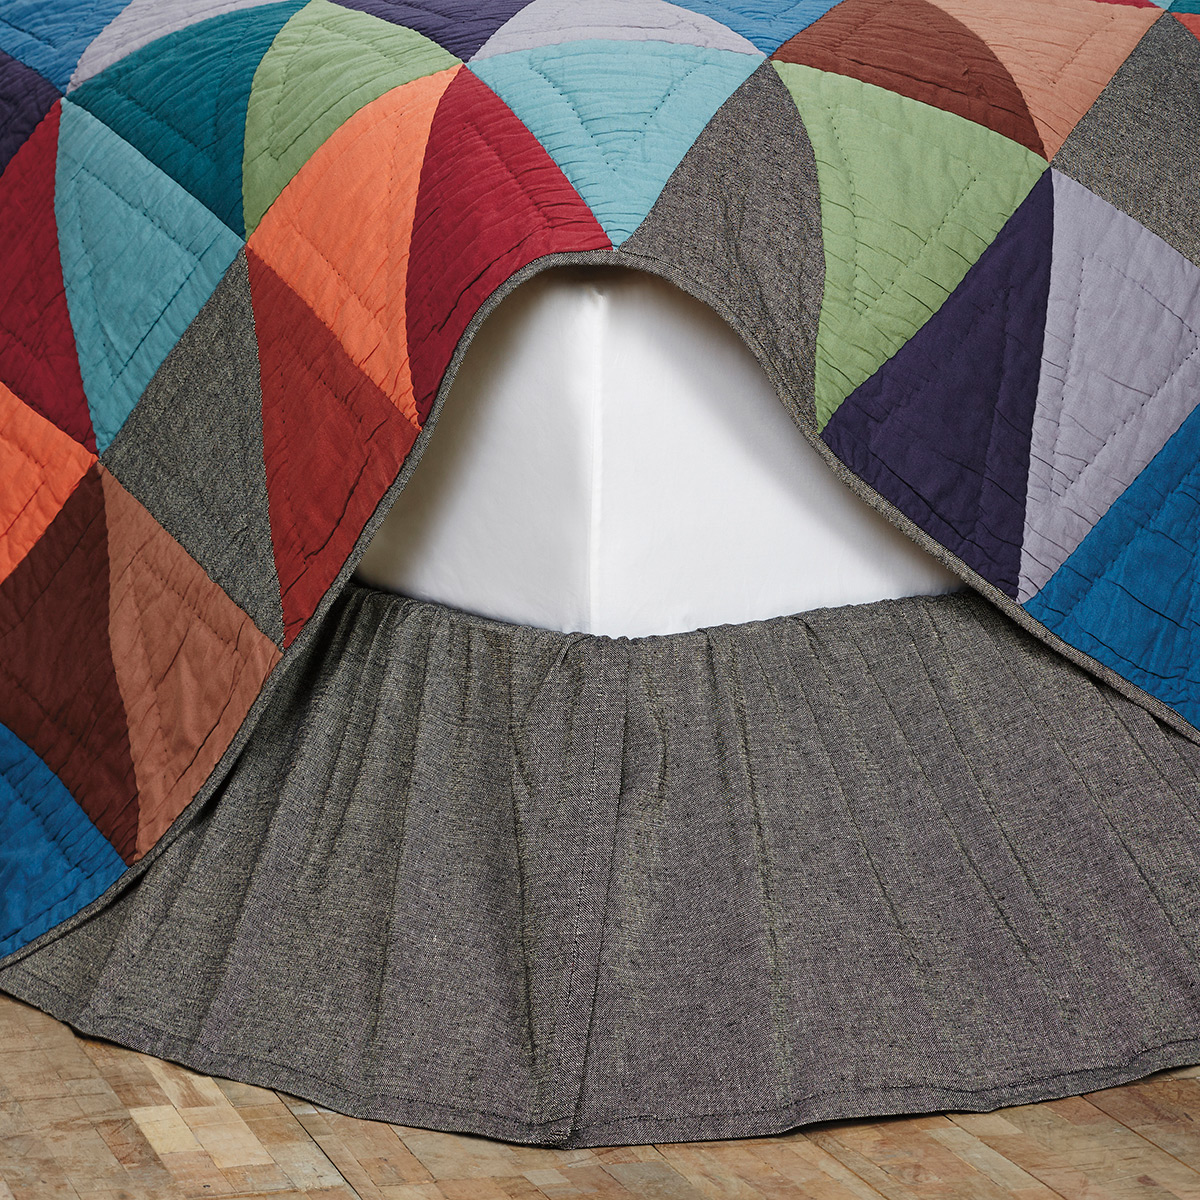 Black Chambray Bed Skirt, by VHC Brands